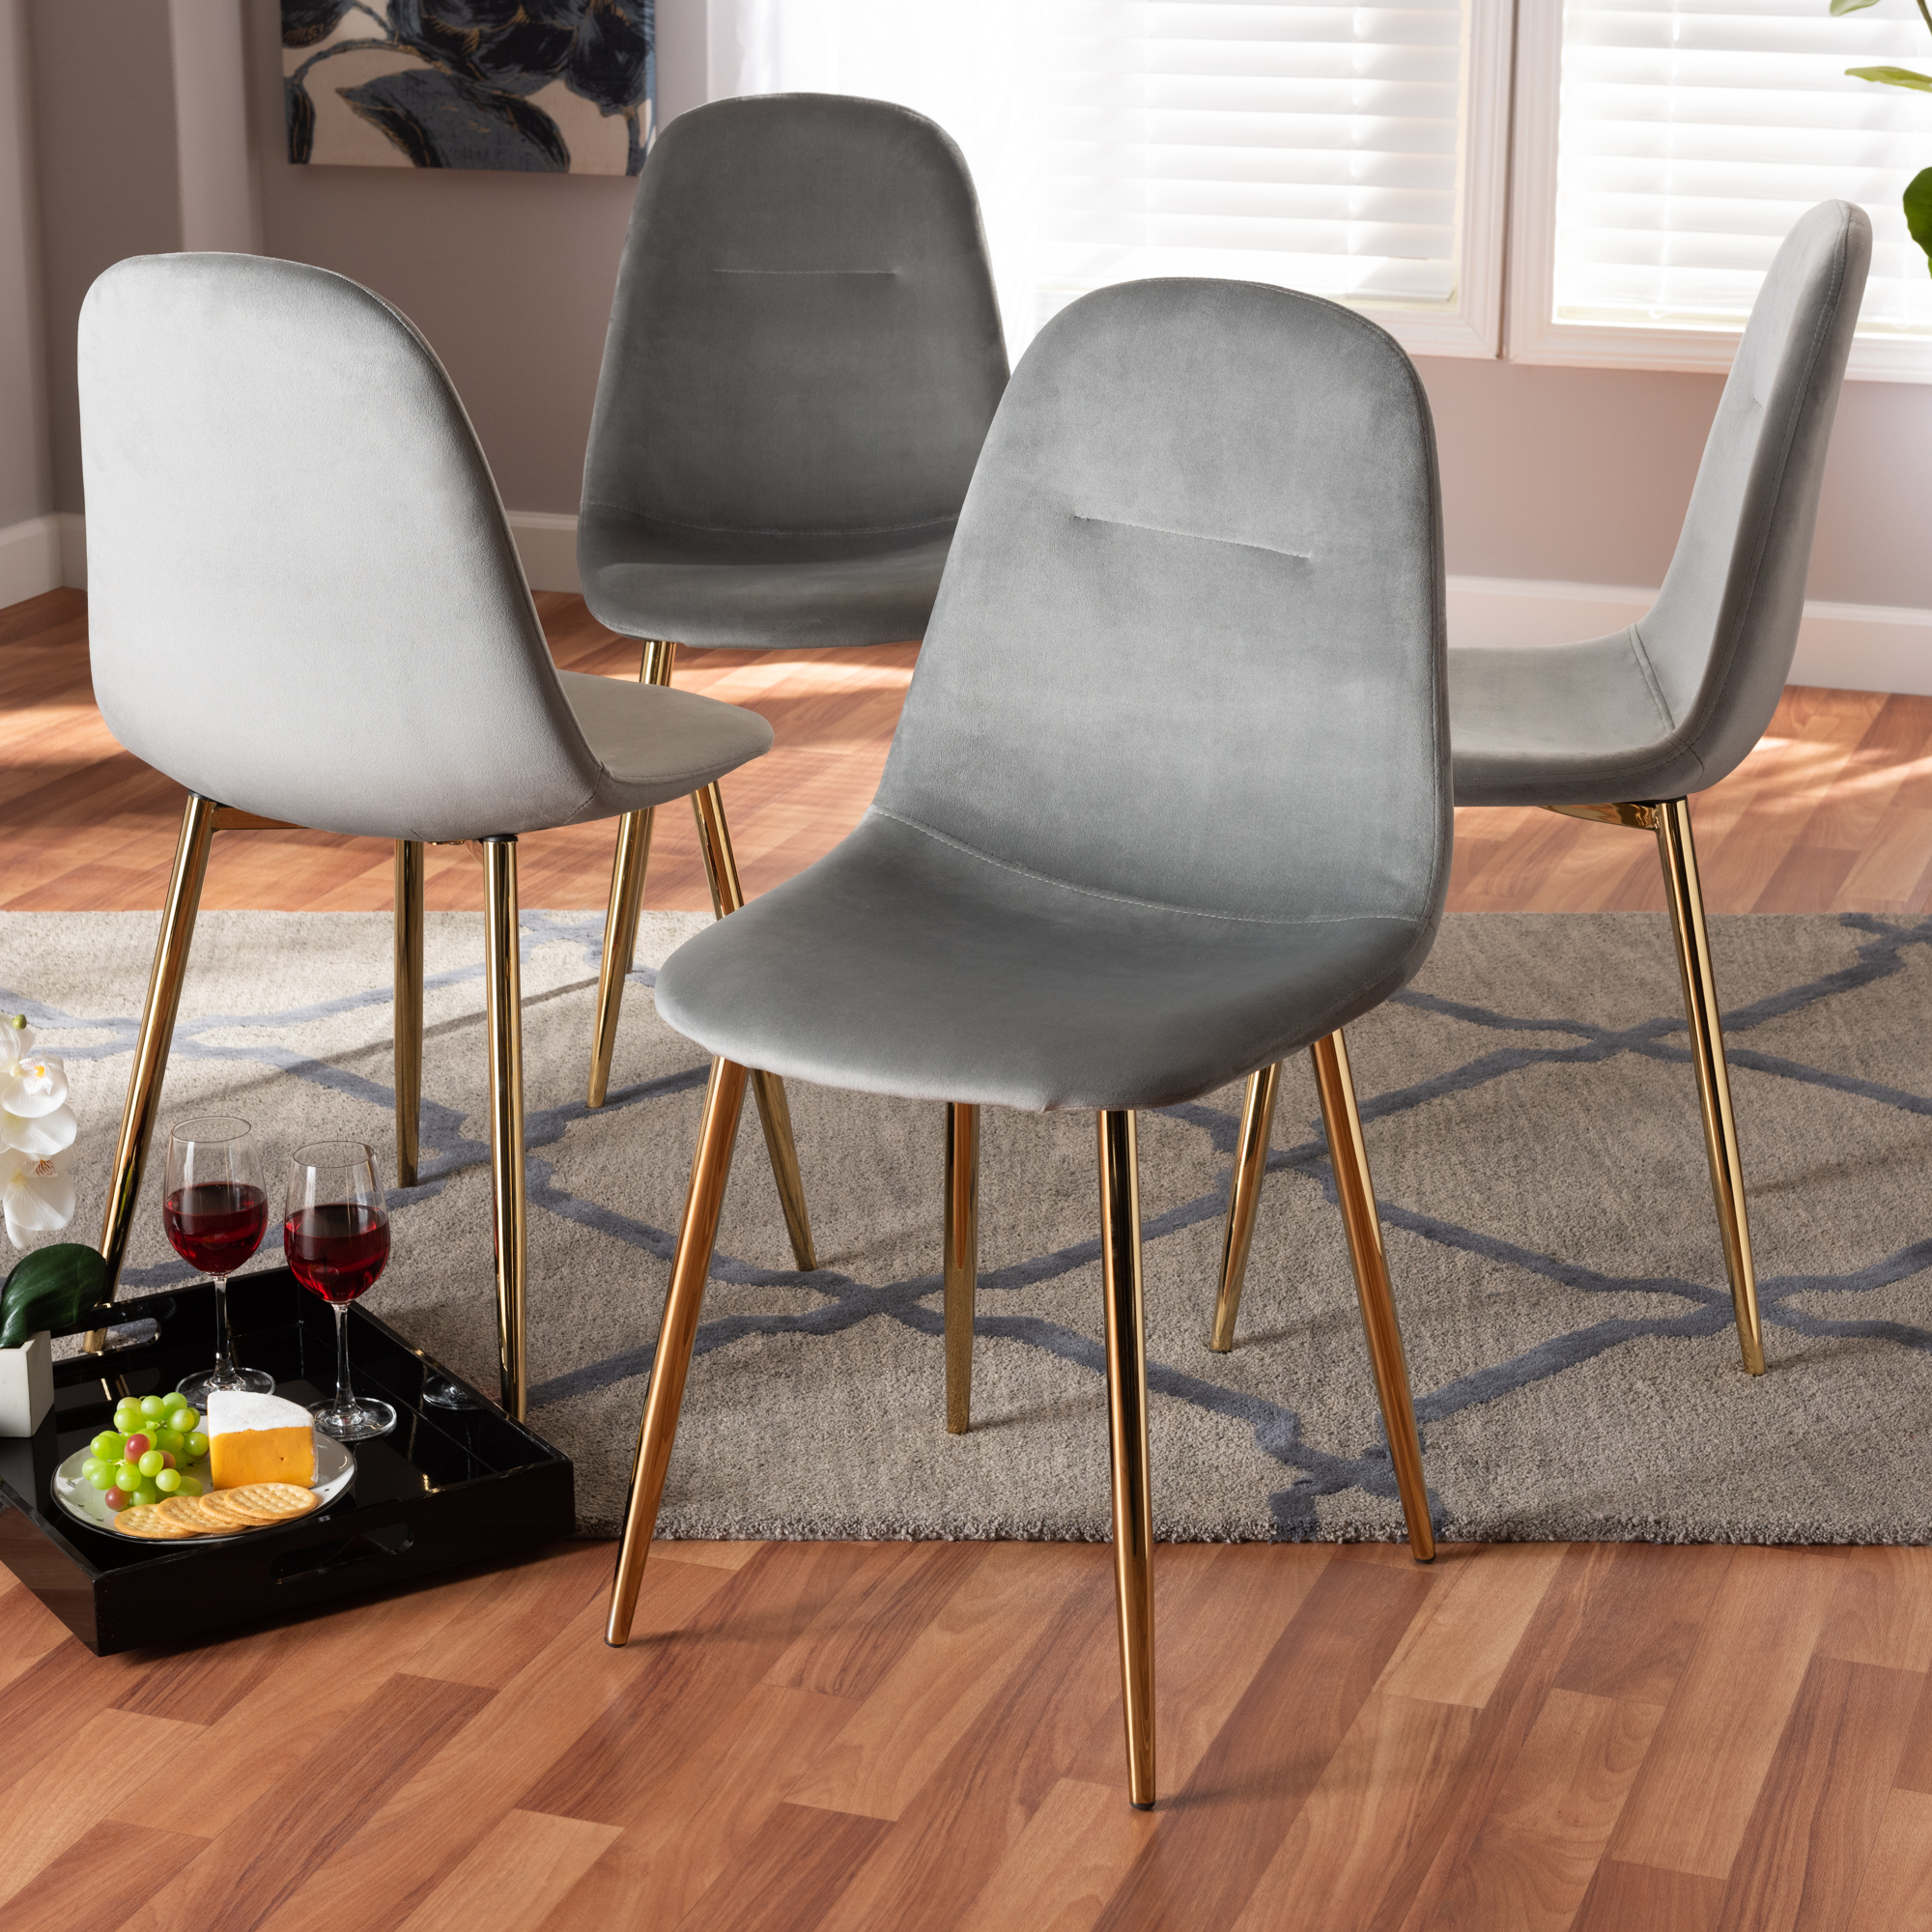 Baxton Studio Elyse Glam and Luxe Grey Velvet Fabric Upholstered Gold Finished 4-Piece Metal Dining Chair Set